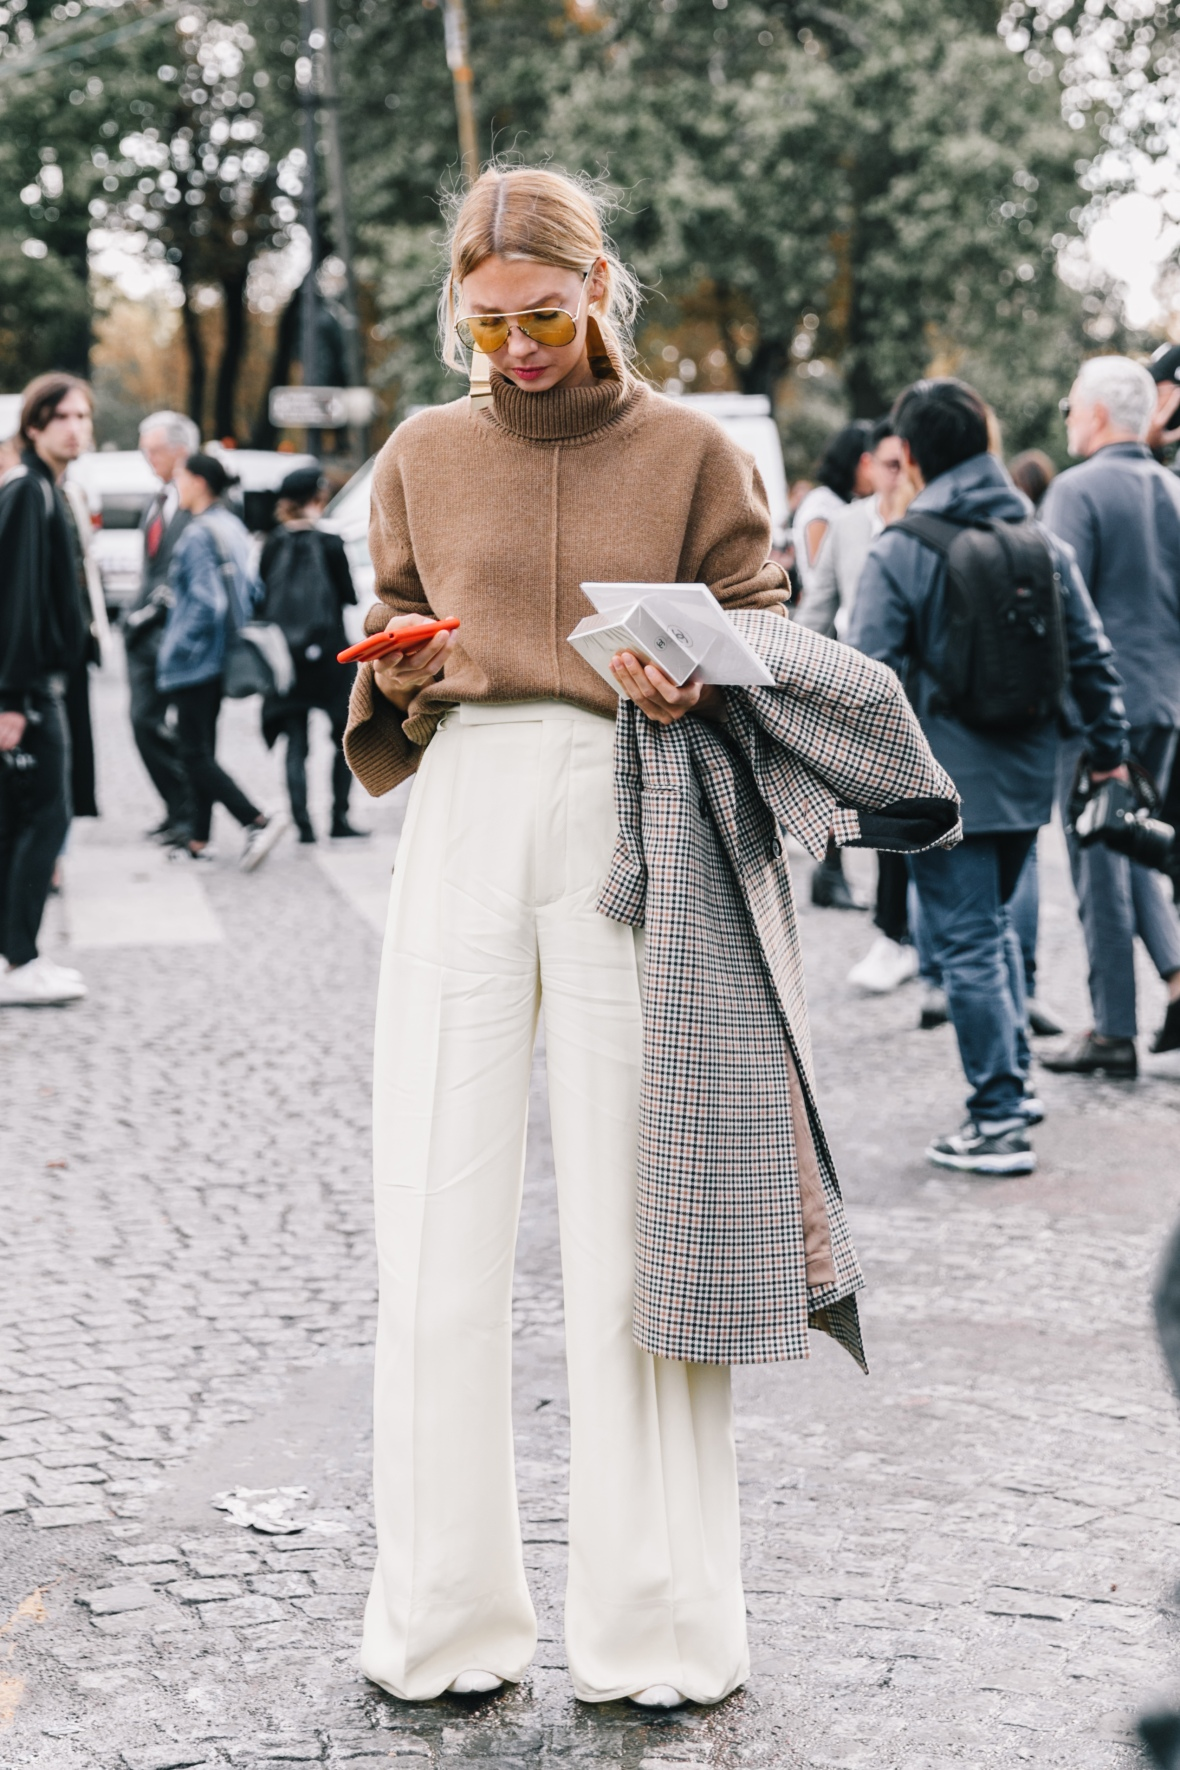 PFW-SS18-Paris_Fashion_Week-Street_Style-Vogue-Collage_Vintage-3-1